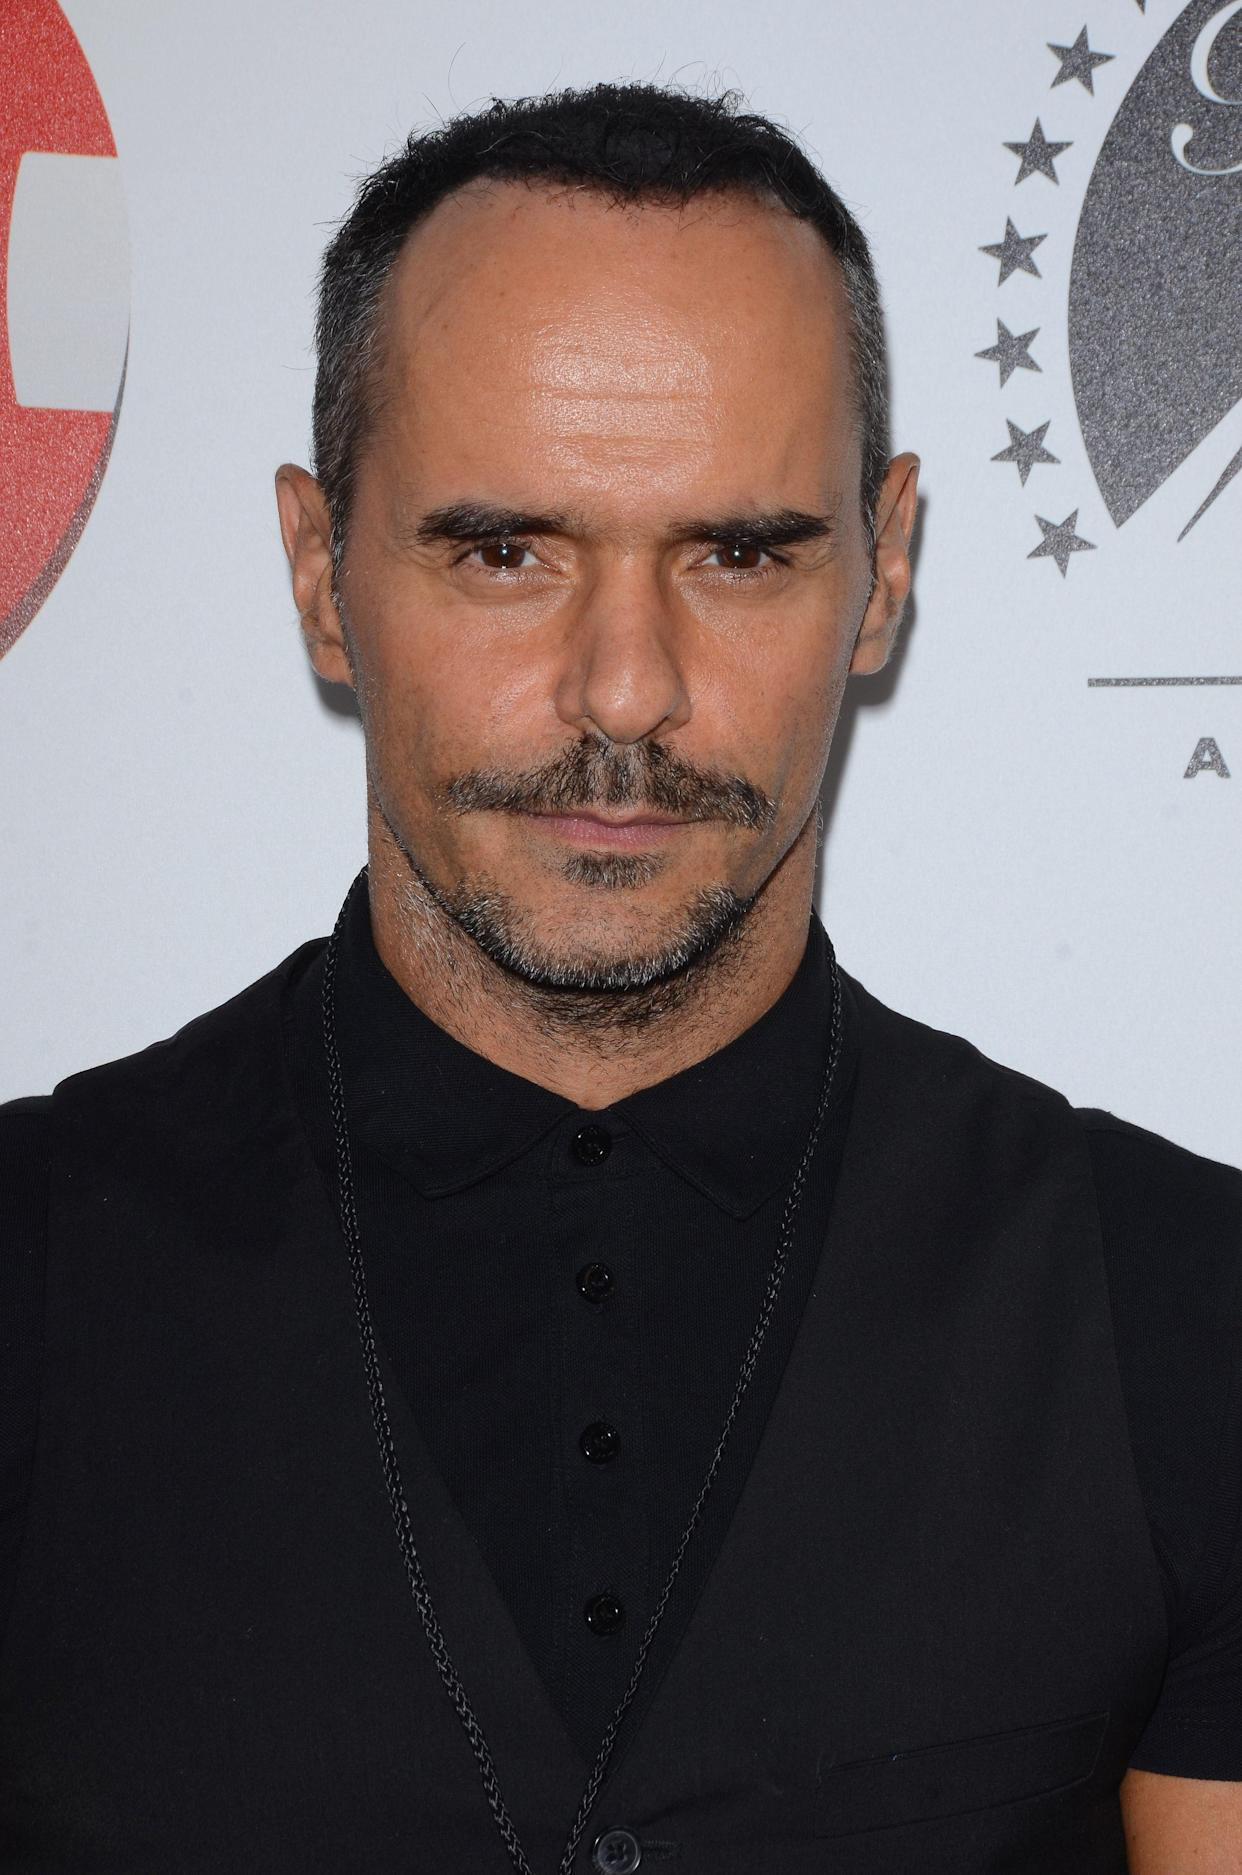 16 July 2014 - Hollywood, California - Michael Greco. Arrivals for the 4th Annual Variety - The Children's Charity Of Southern CA Texas Hold 'Em Poker Tournament held at Paramount Studios in Hollywood, Ca. Photo Credit: Birdie Thompson/AdMedia/Sipa USA